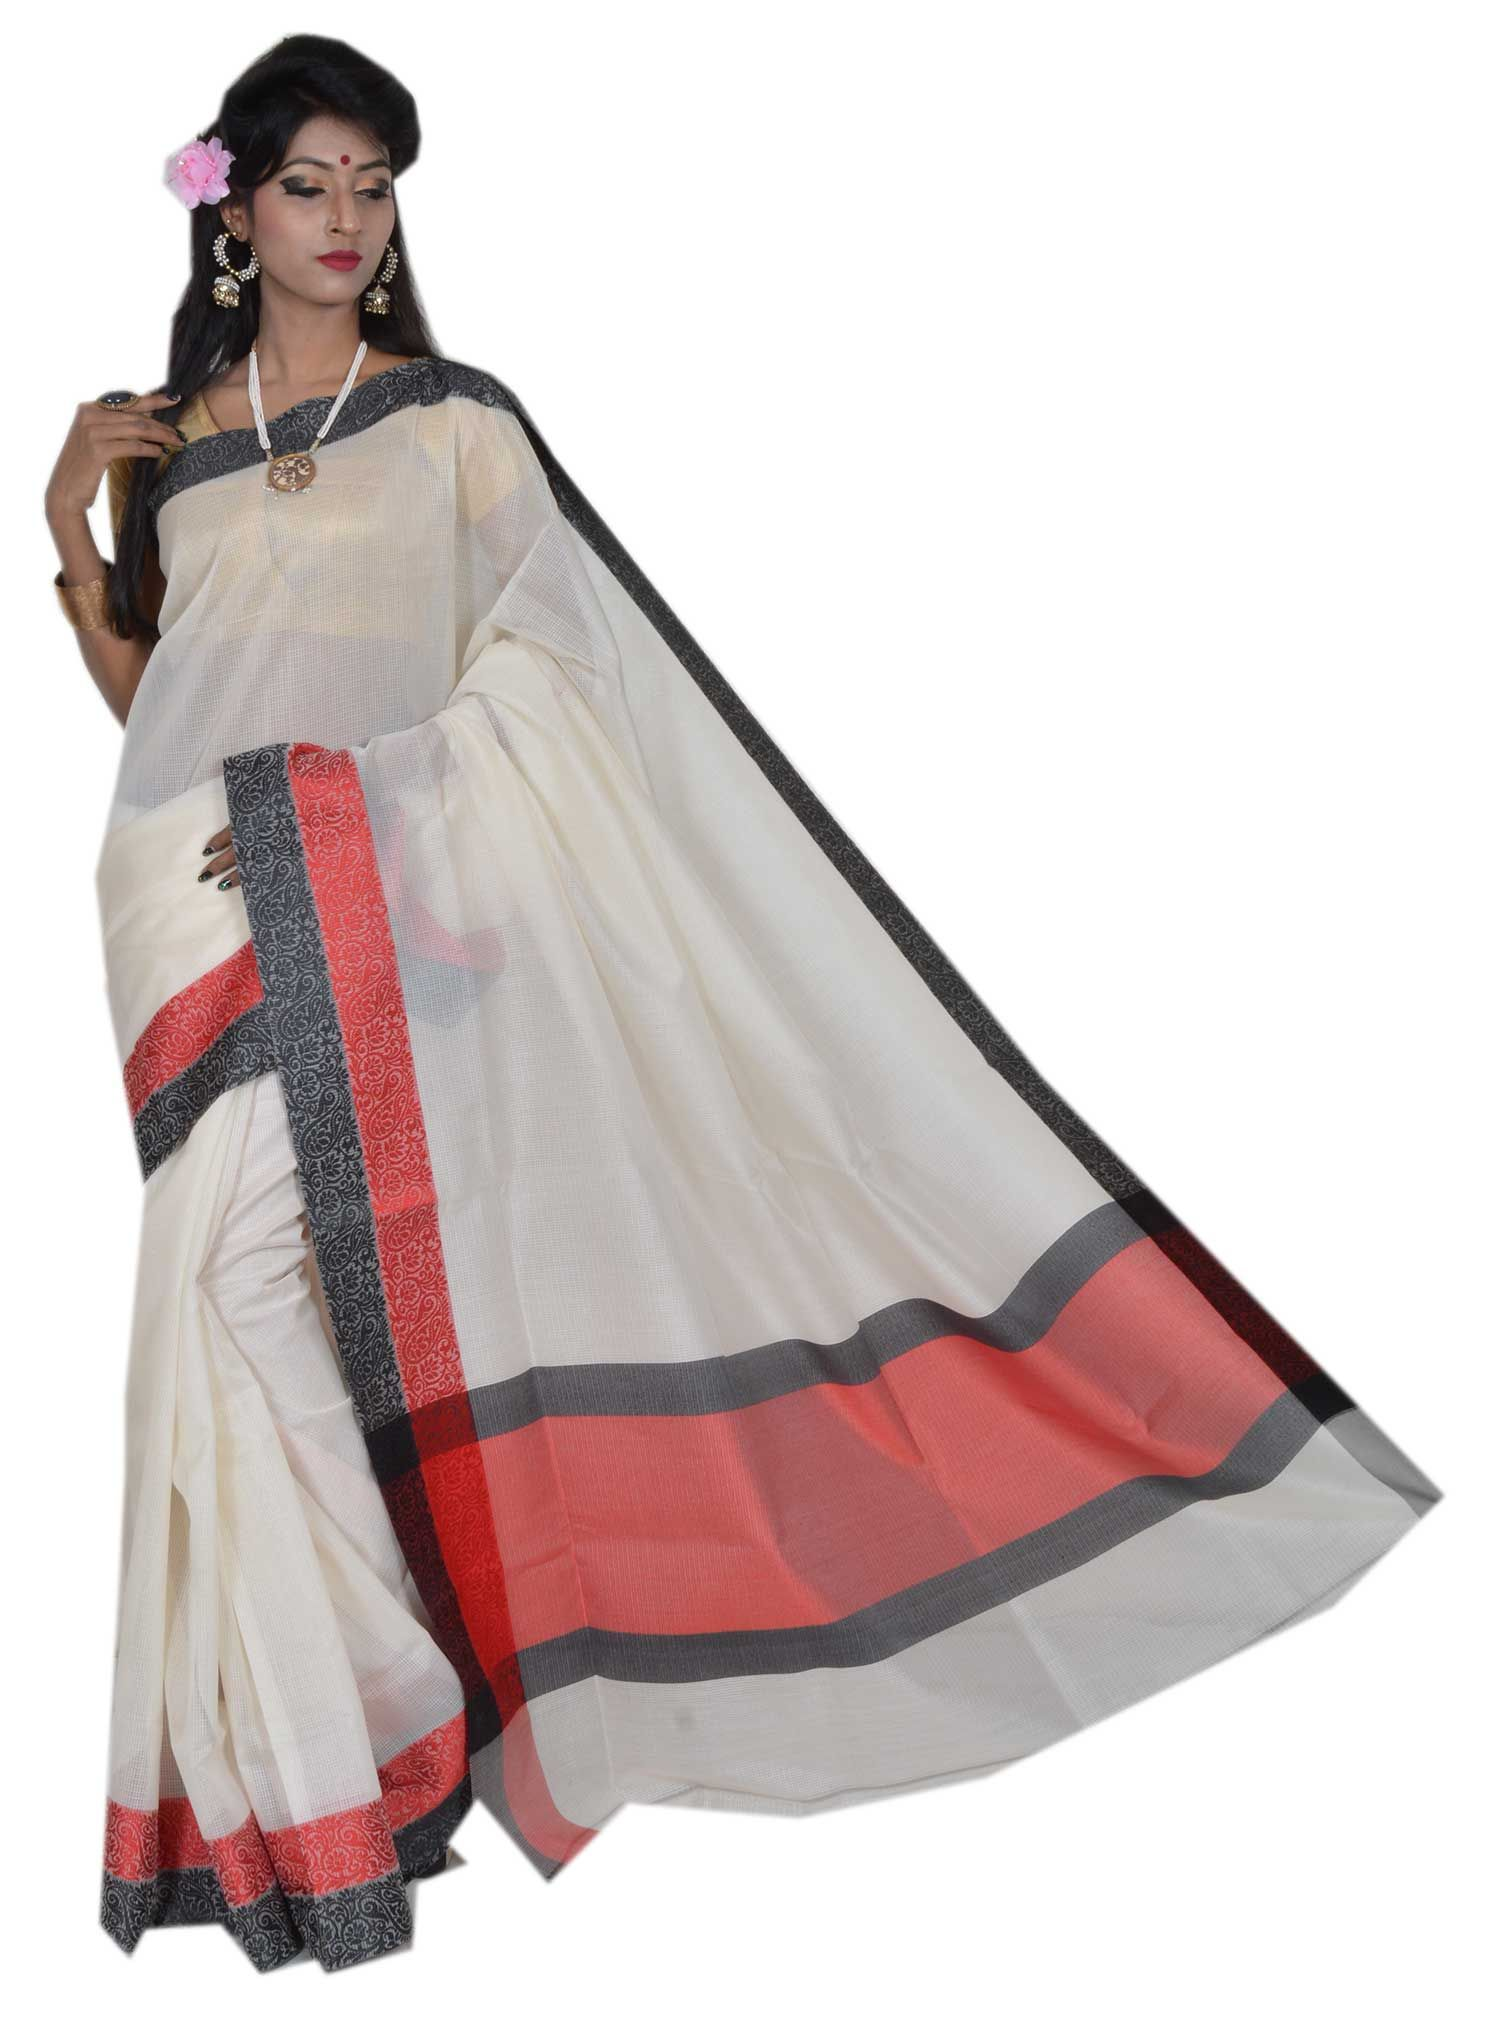 529ae96ee #banarasi weaves #point #saree #manufacturers company in #varanasi, #India.  Best #online #shopping sites #cloth #fashion #kurti #blauses #women #best  #price ...